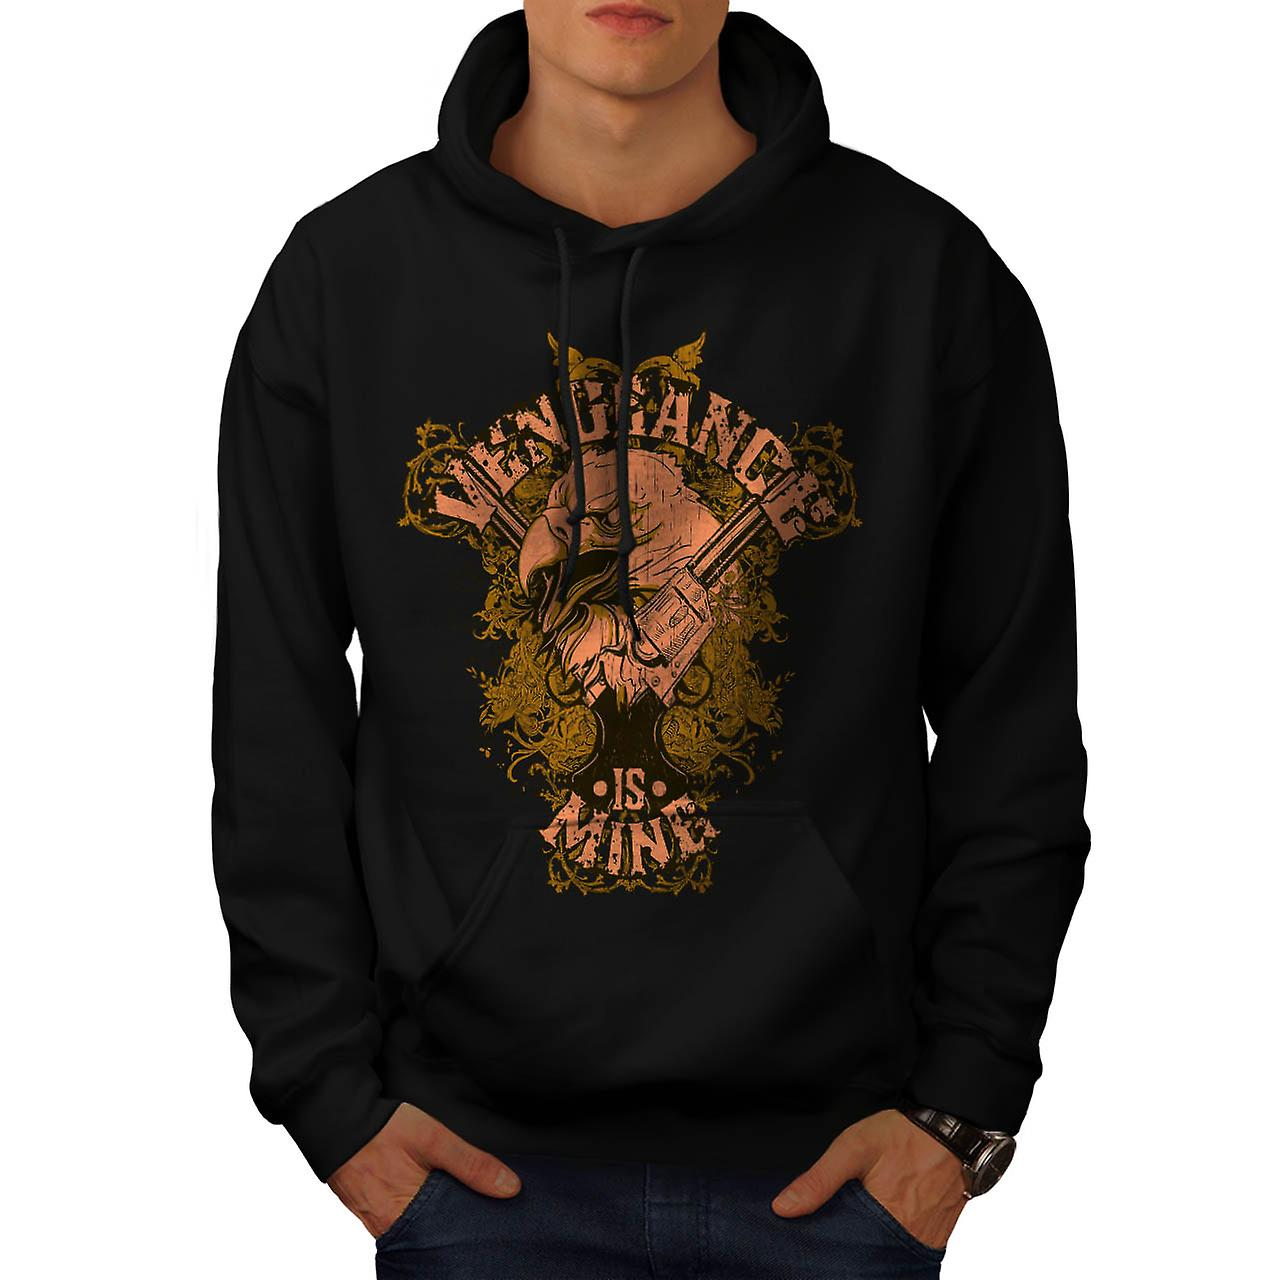 Vengeance Is Mine Vintage Men Black Hoodie | Wellcoda